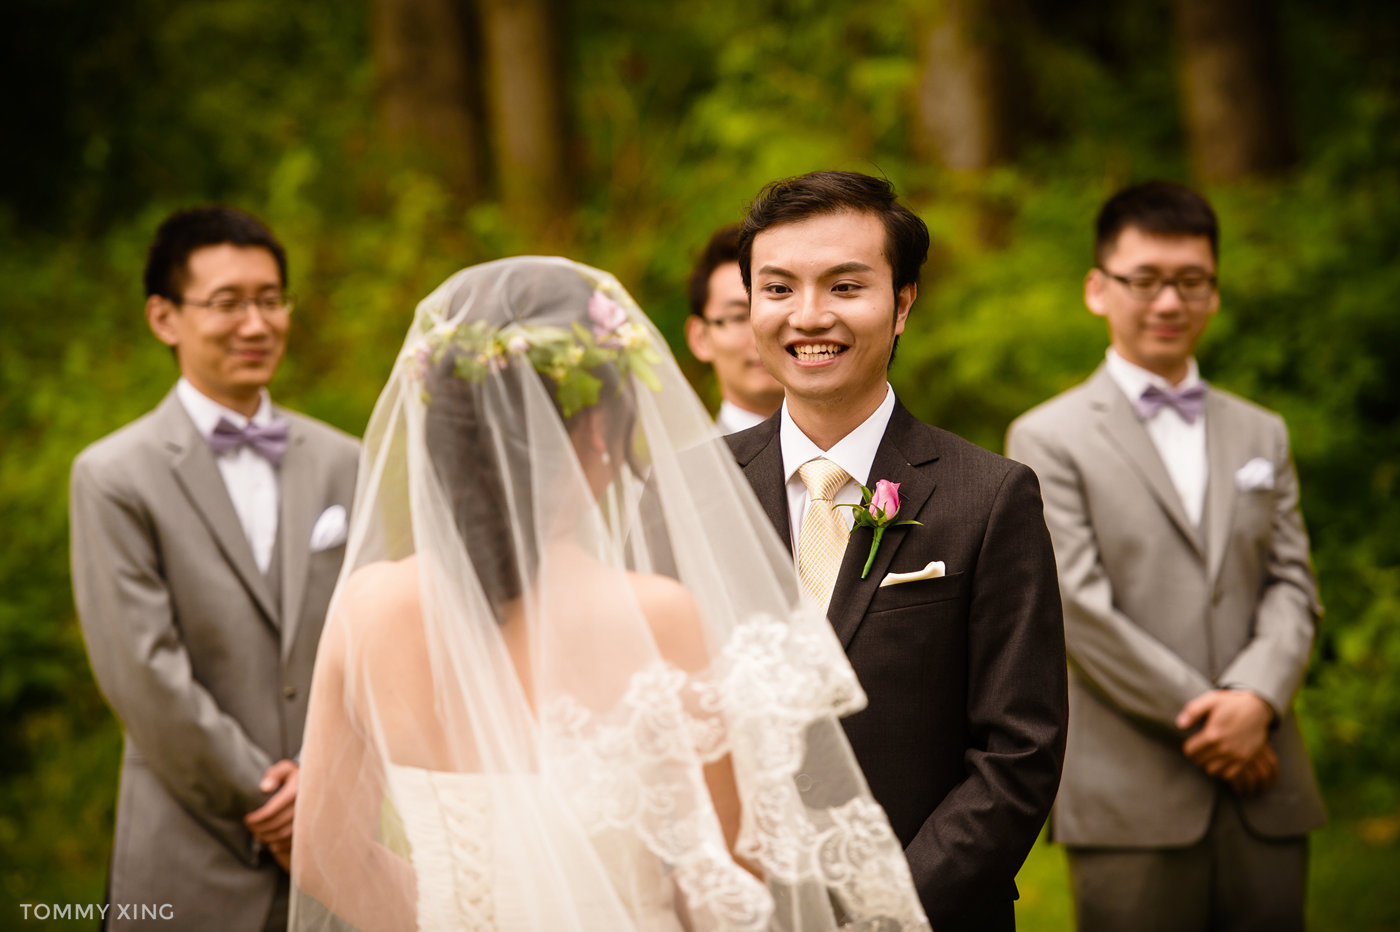 Seattle Wedding and pre wedding Los Angeles Tommy Xing Photography 西雅图洛杉矶旧金山婚礼婚纱照摄影师 087.jpg